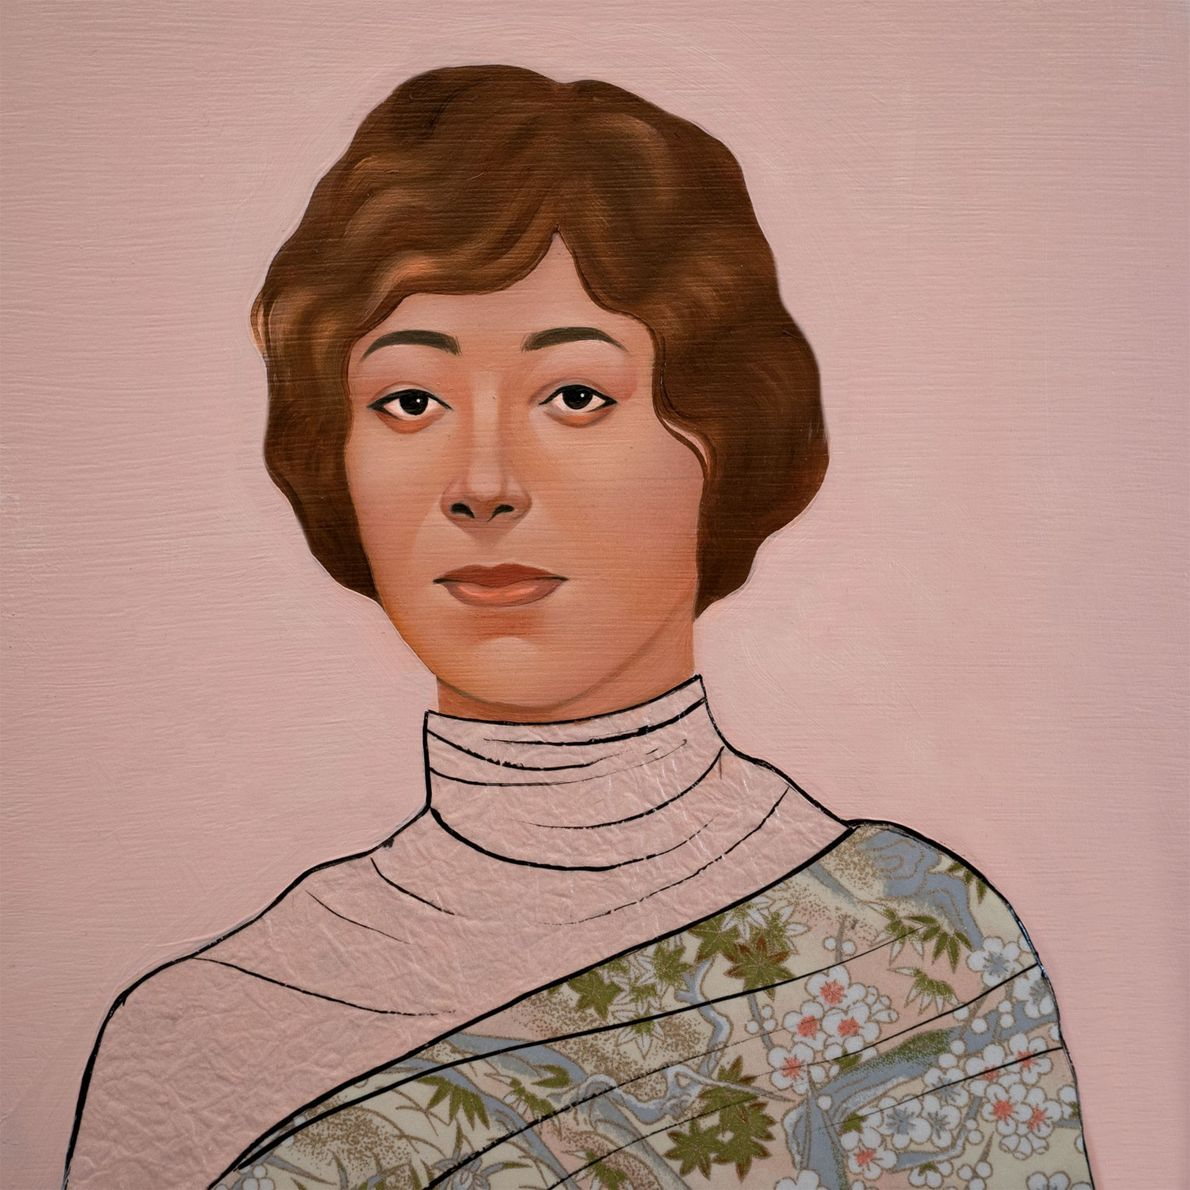 Vera Danchakoff 1879-Unknown, Stem Cell Pioneer Eschewing her parents' plans for a fine arts education, she was the ...